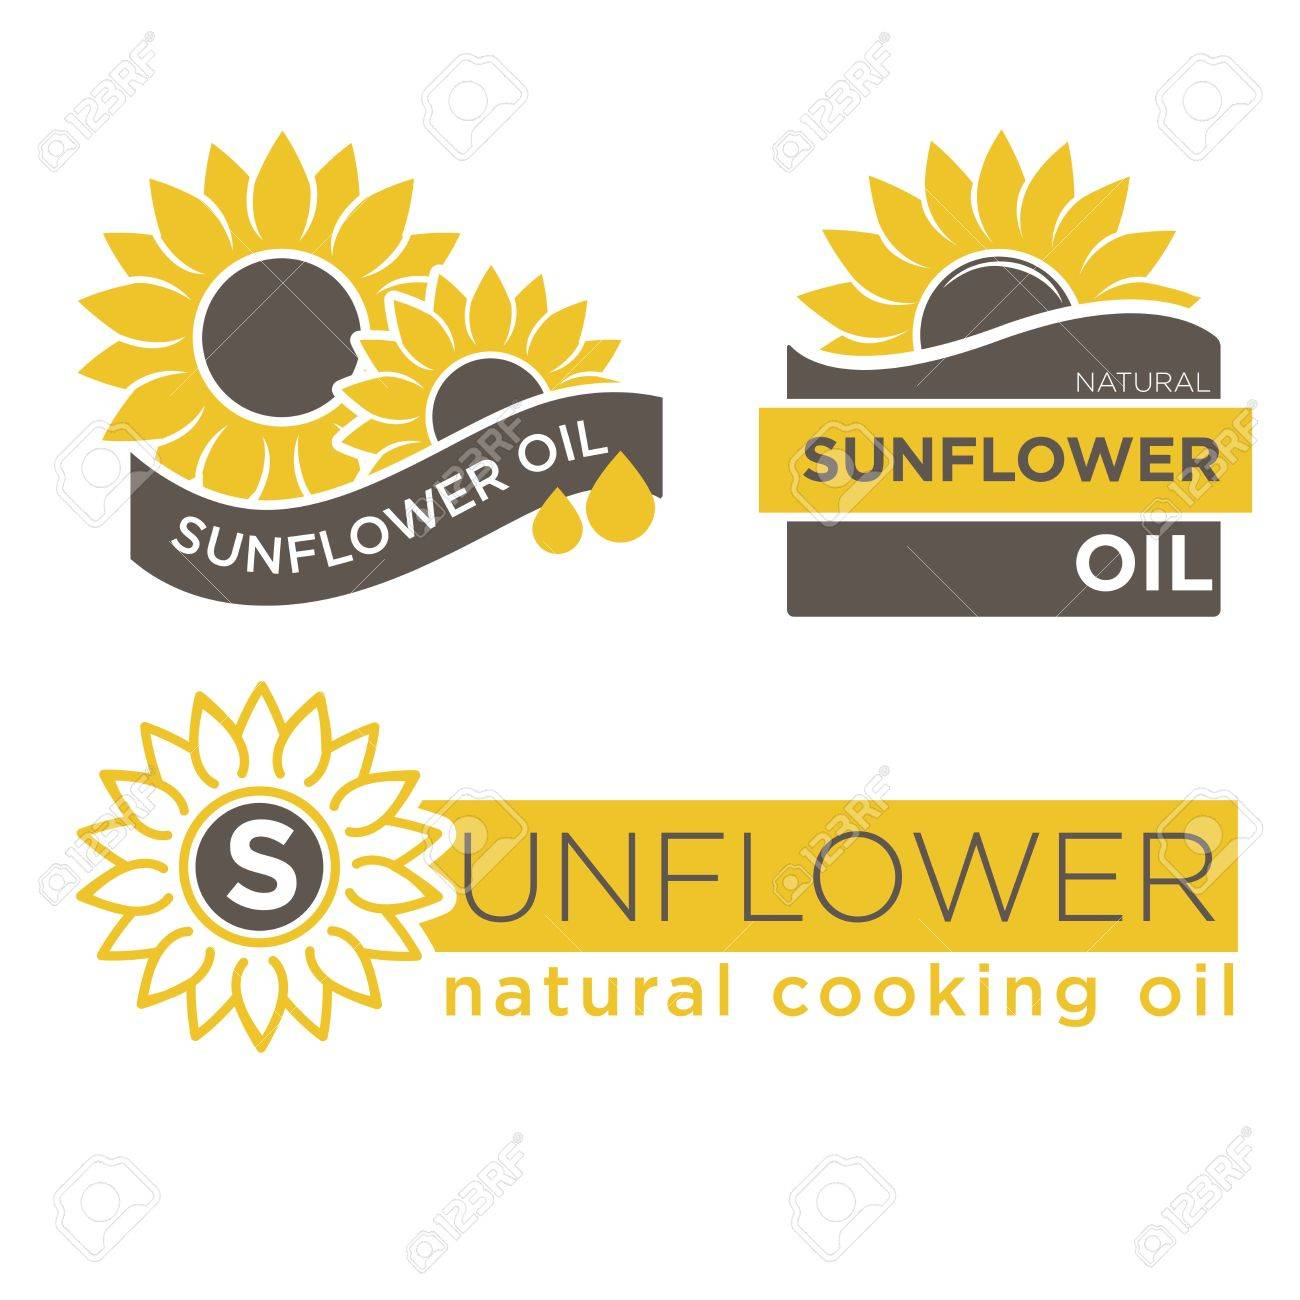 sunflower oil product logos templates natural cooking oil vector